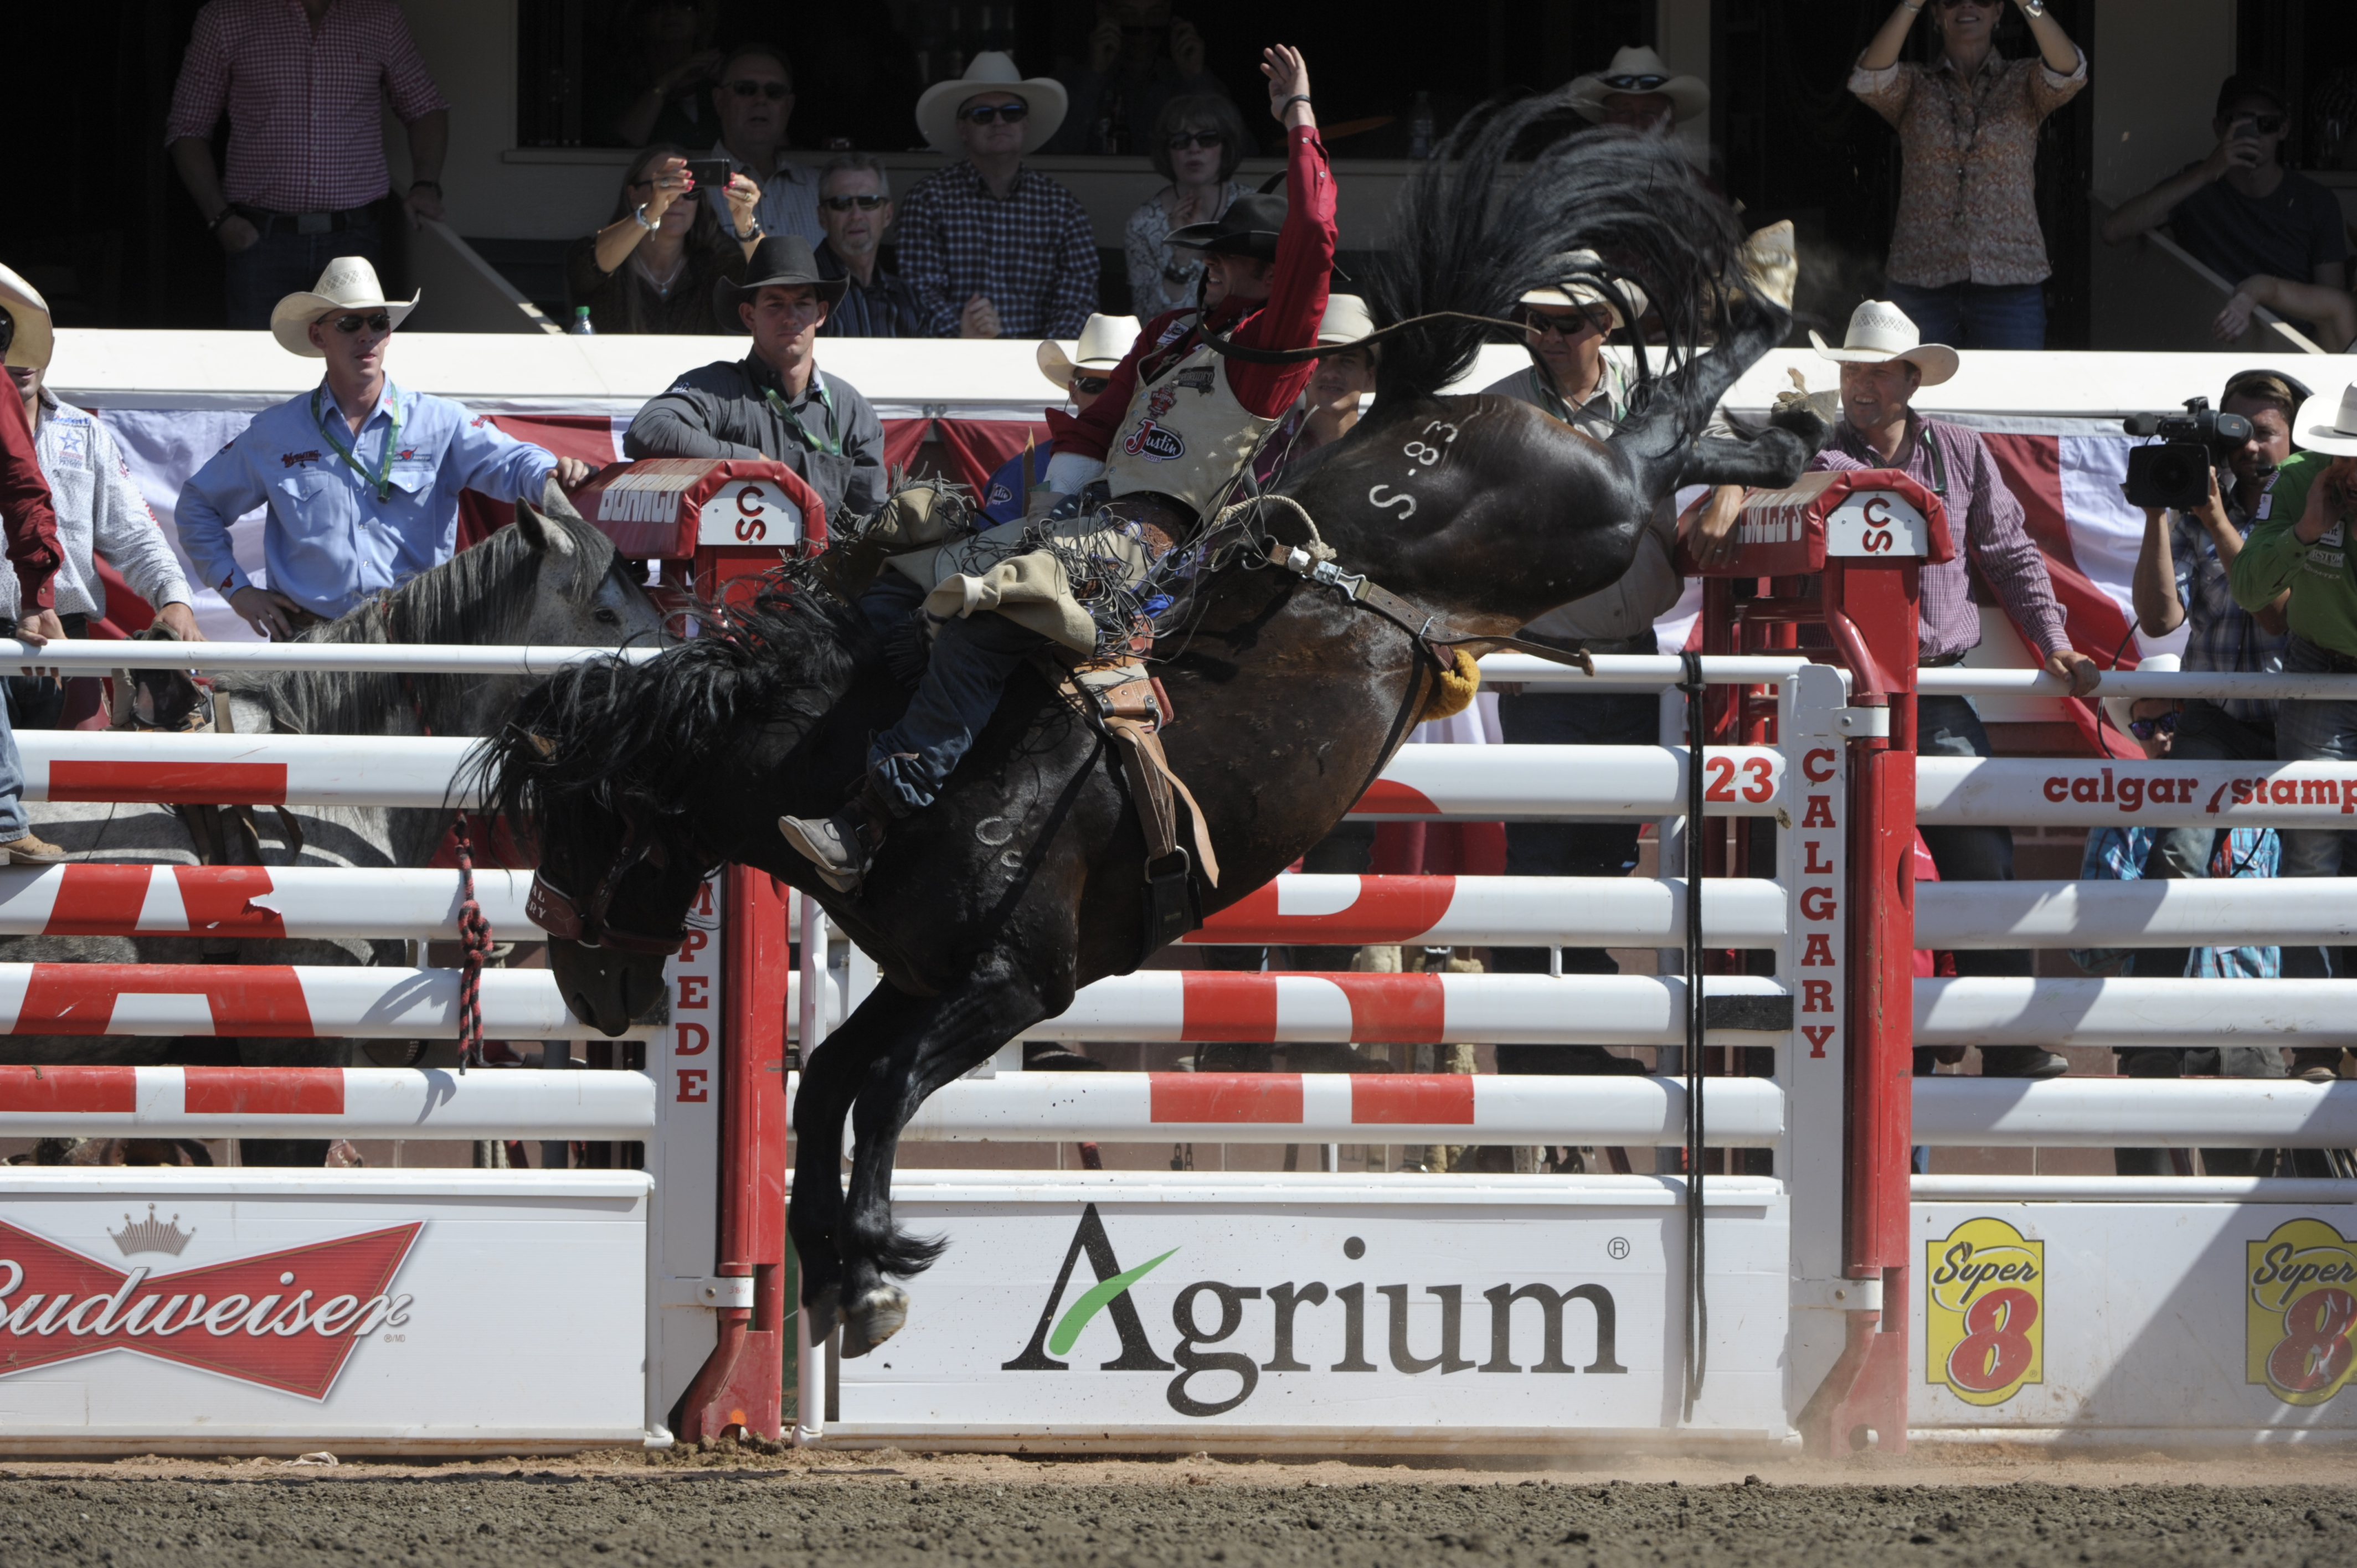 World S Top Rodeo Champions Will Buckle Up For 2015